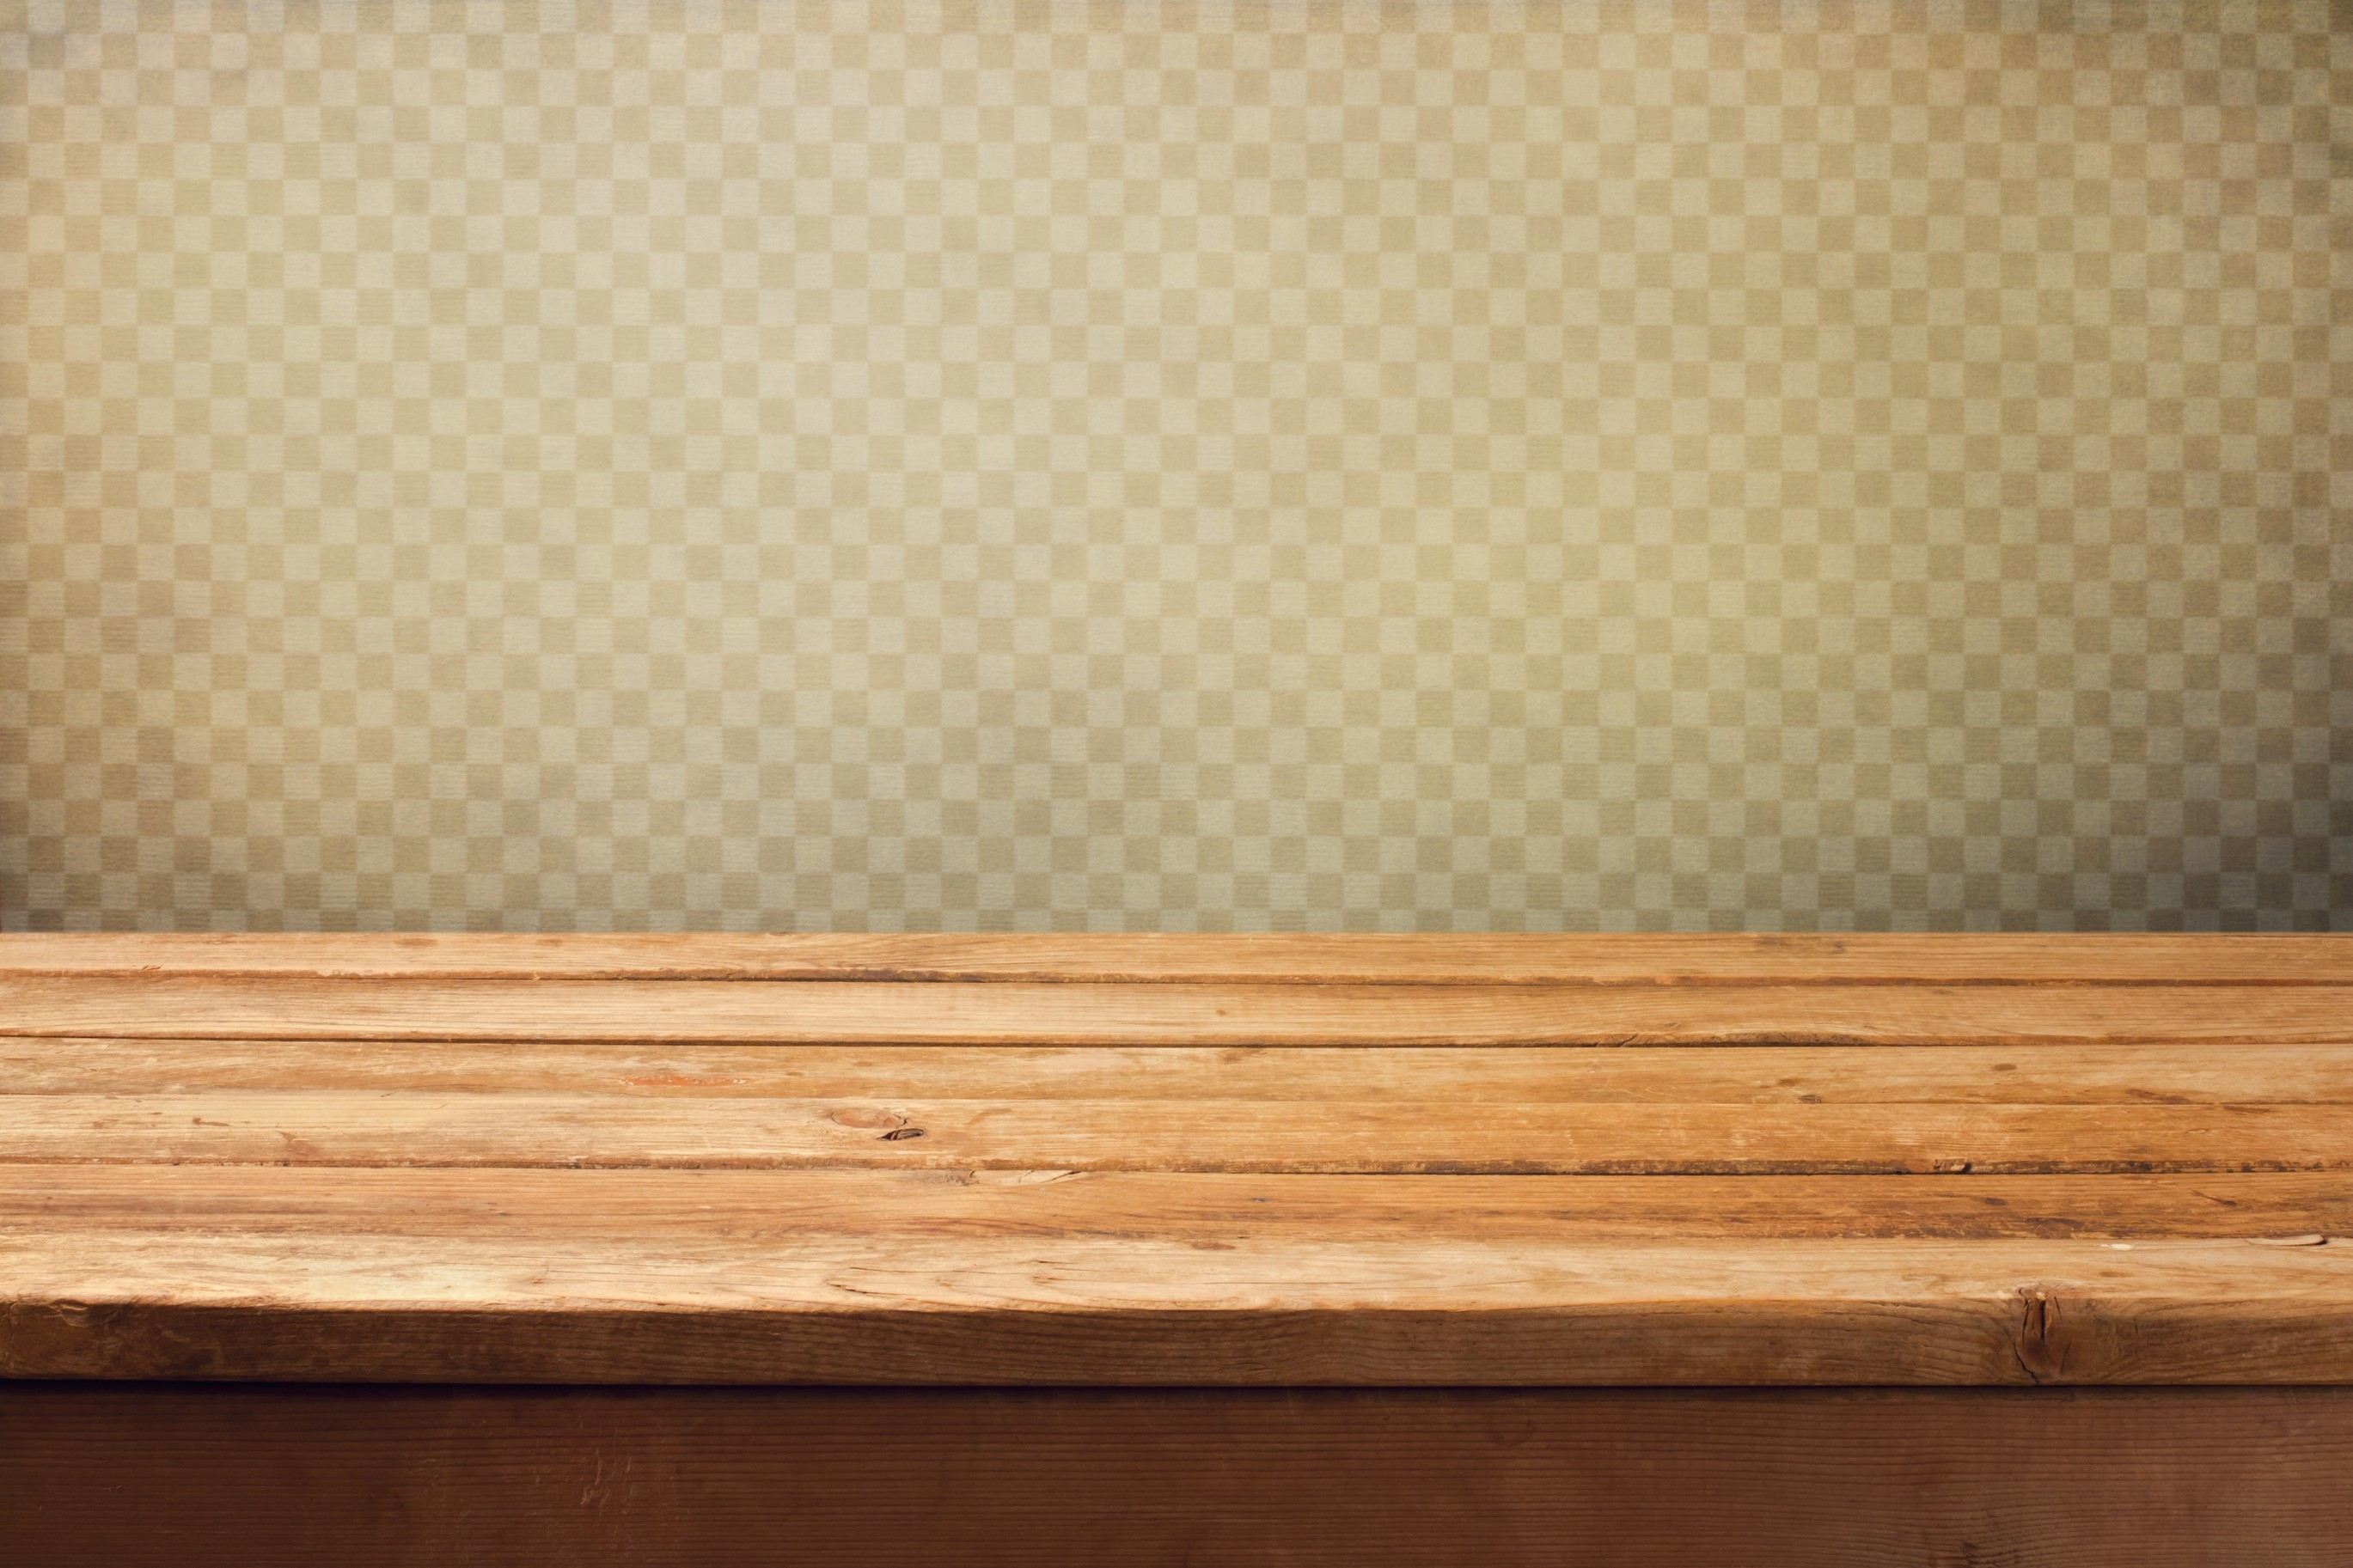 Wooden Desk With Blue Background ~ Table background ·① download free beautiful hd backgrounds